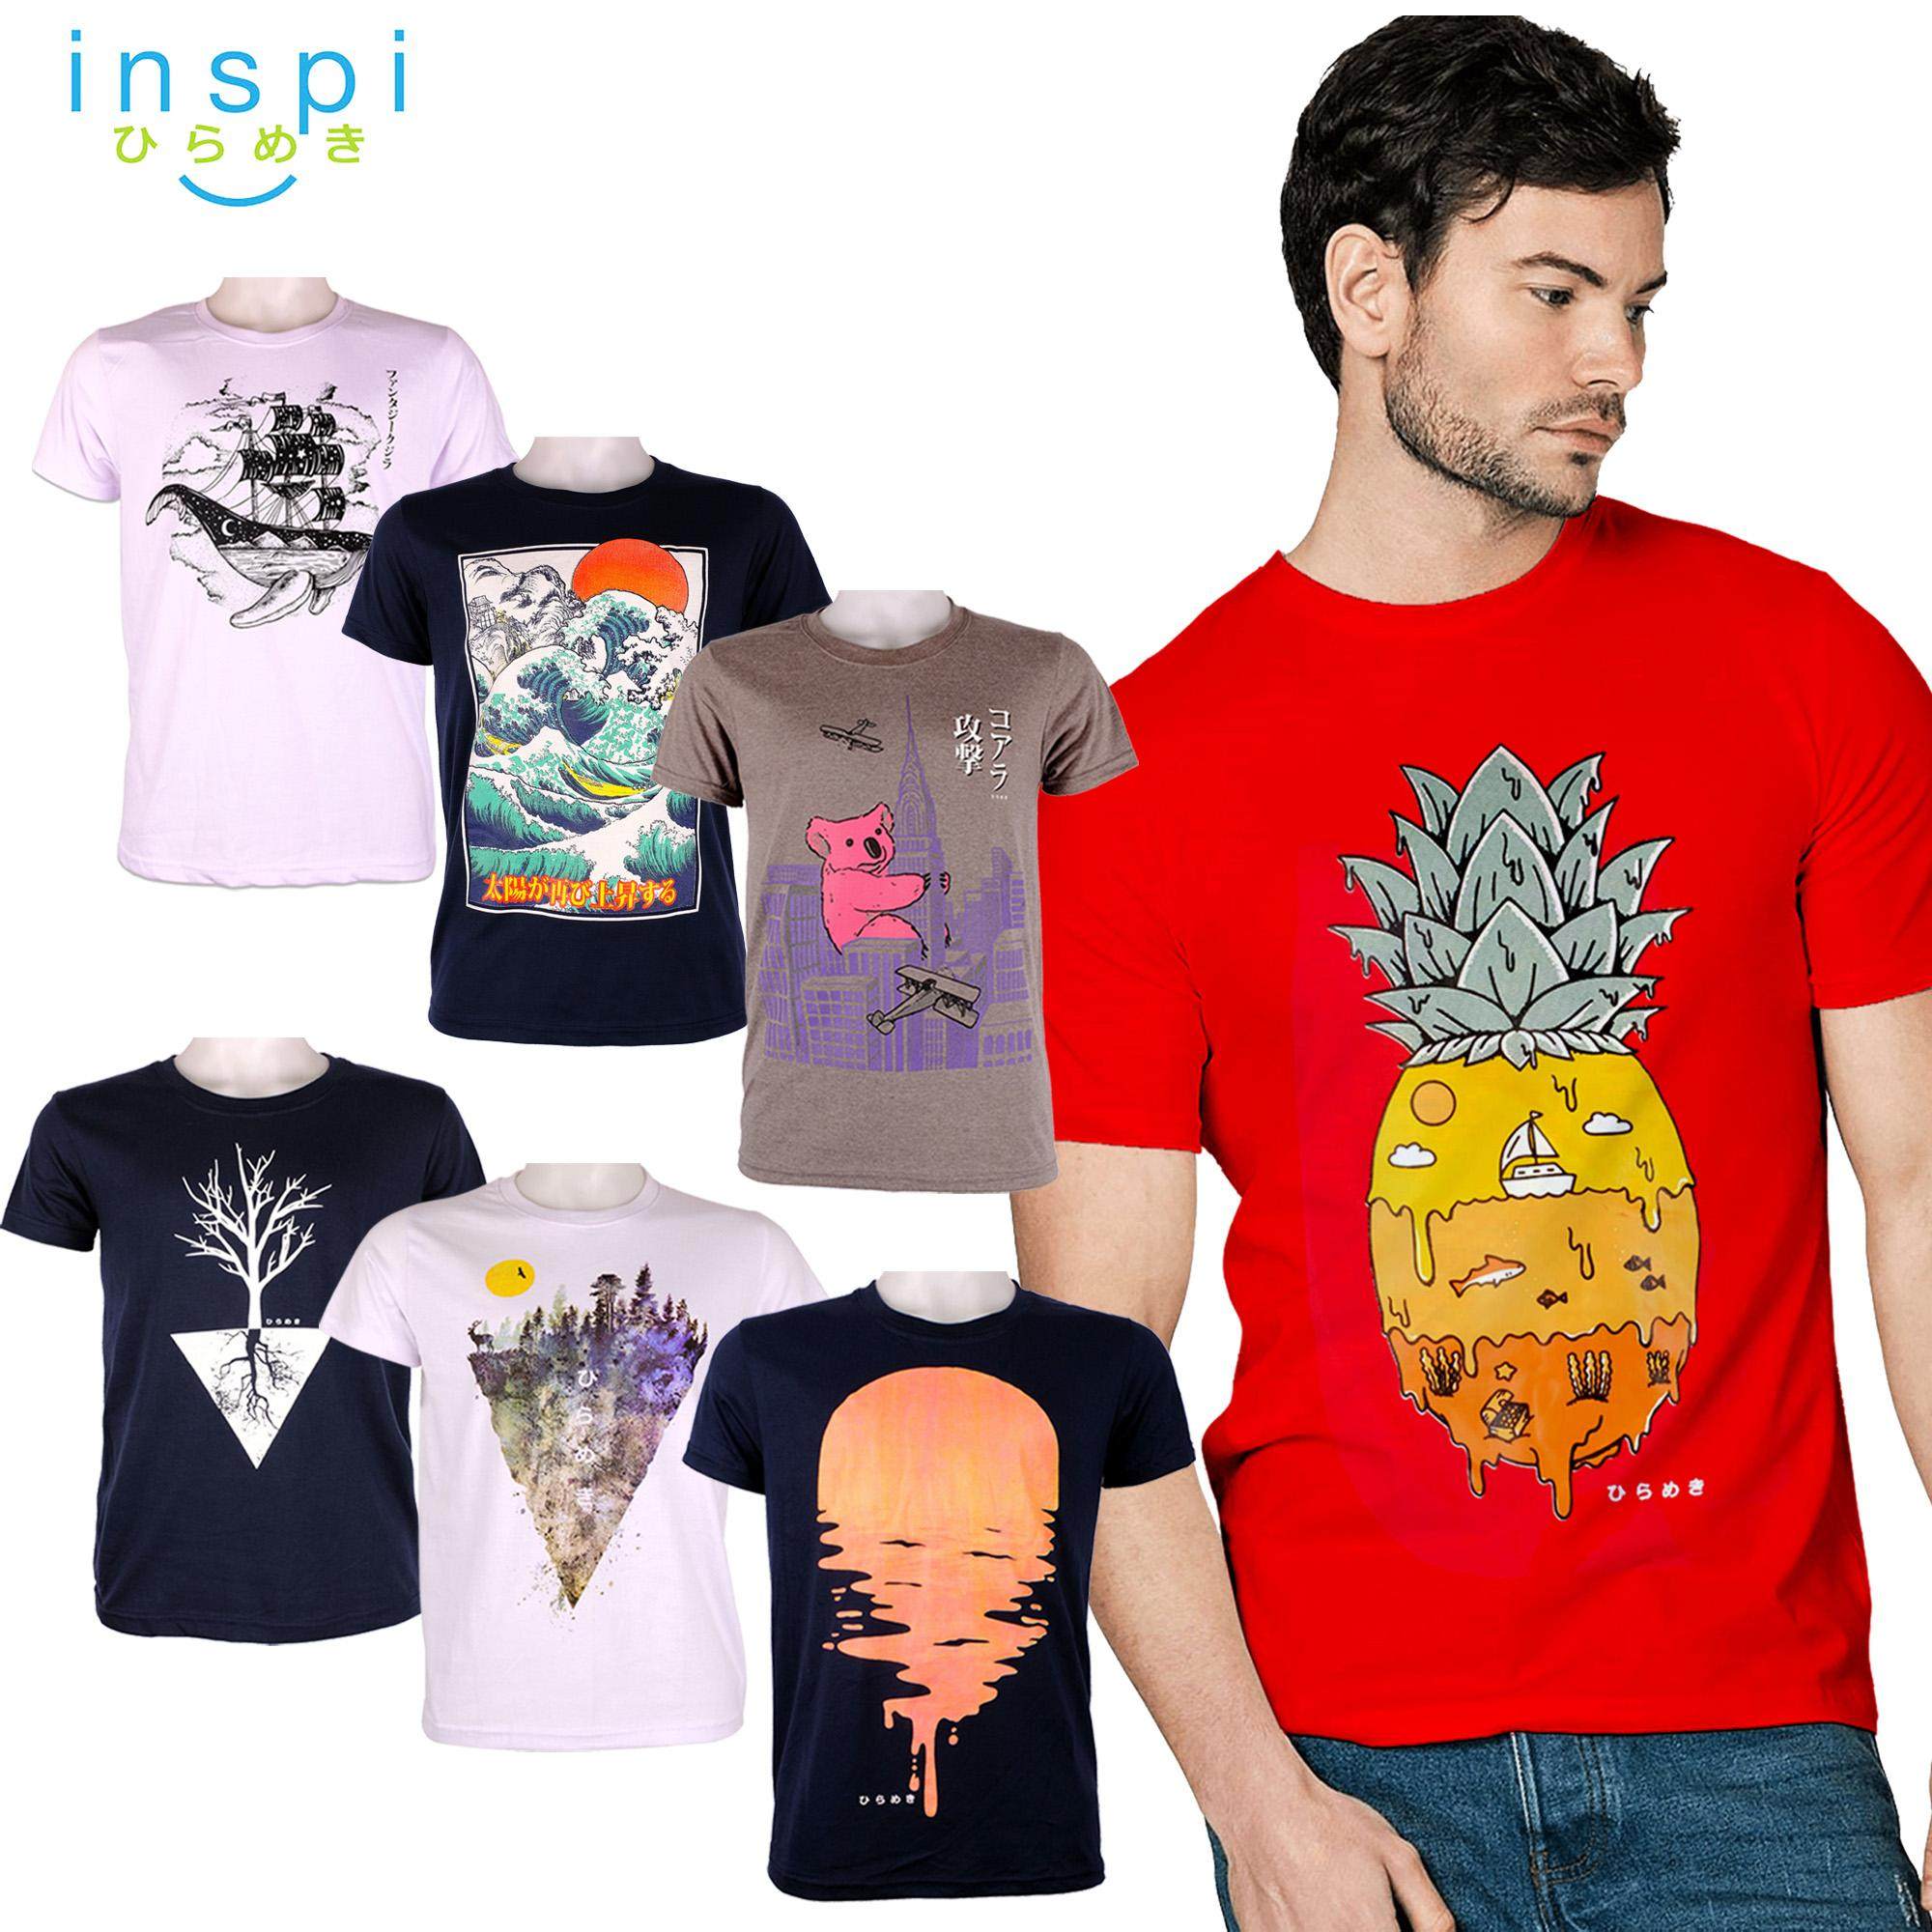 f131fe29 INSPI Tees Nature Collection tshirt printed graphic tee Mens t shirt shirts  for men tshirts sale